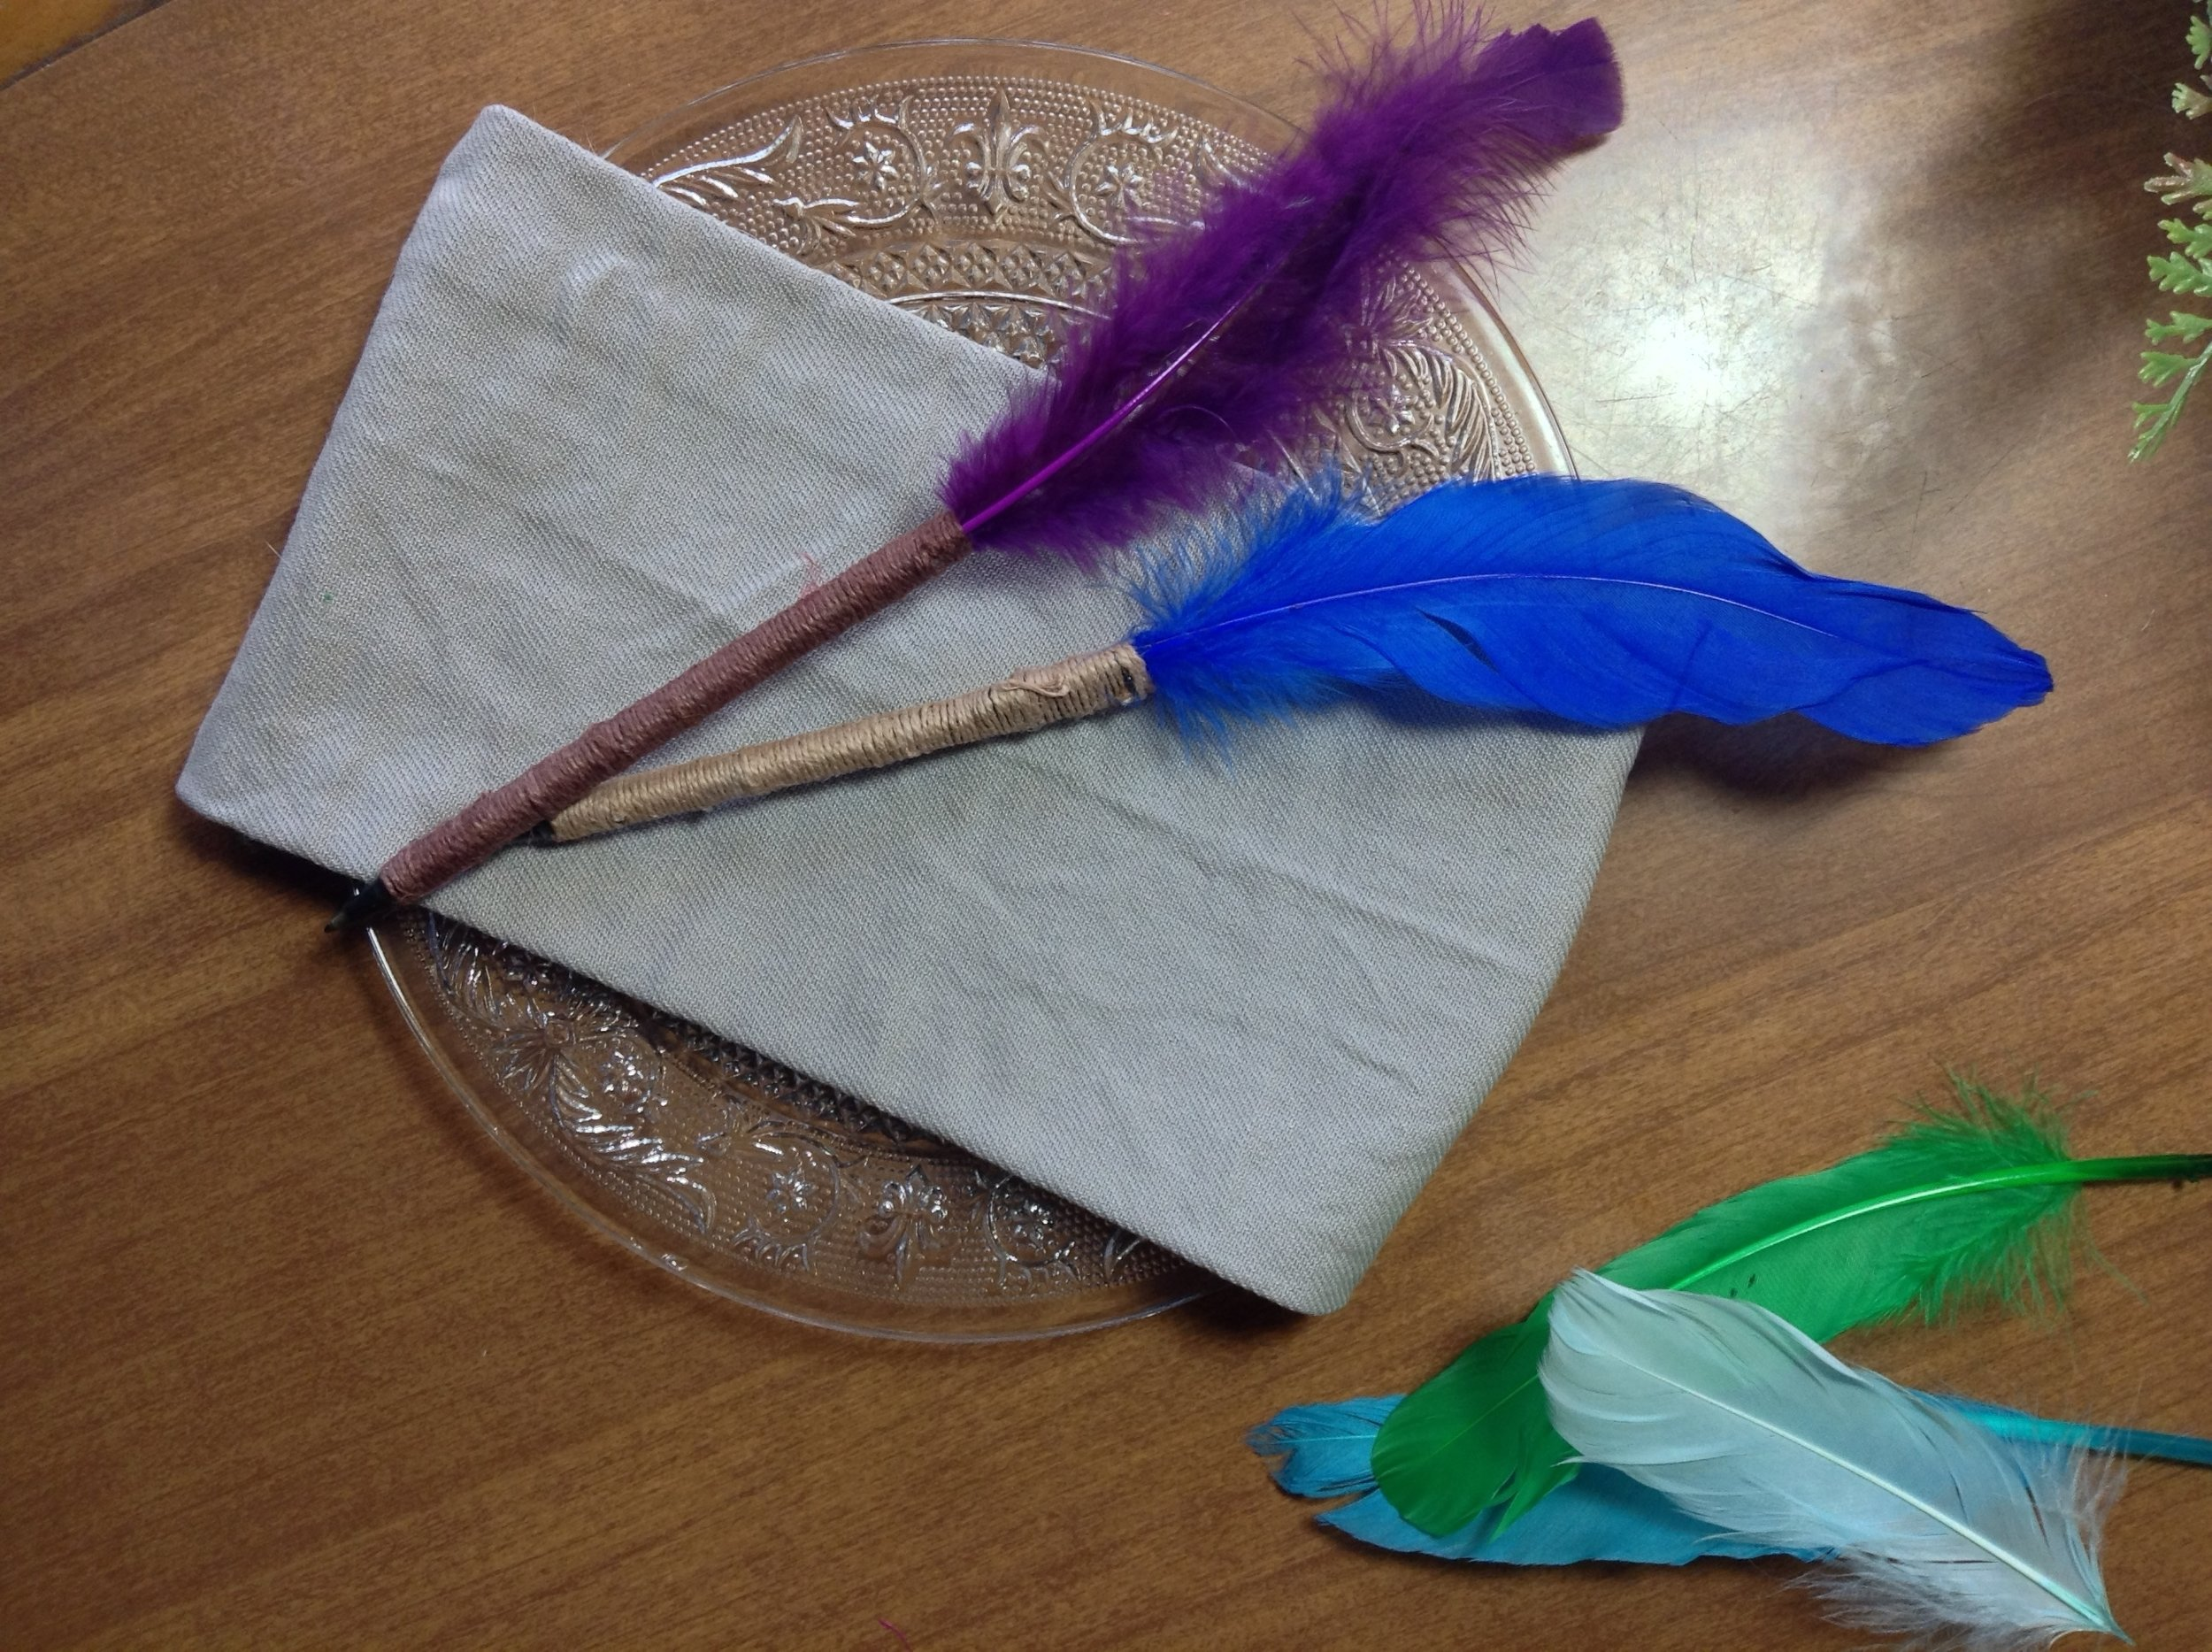 Get extra crafty - Add other embelishments like gems or pearls, or keep it simple by using natural colored feathers! This is a great project to get your wedding party or friends involved and have fun!